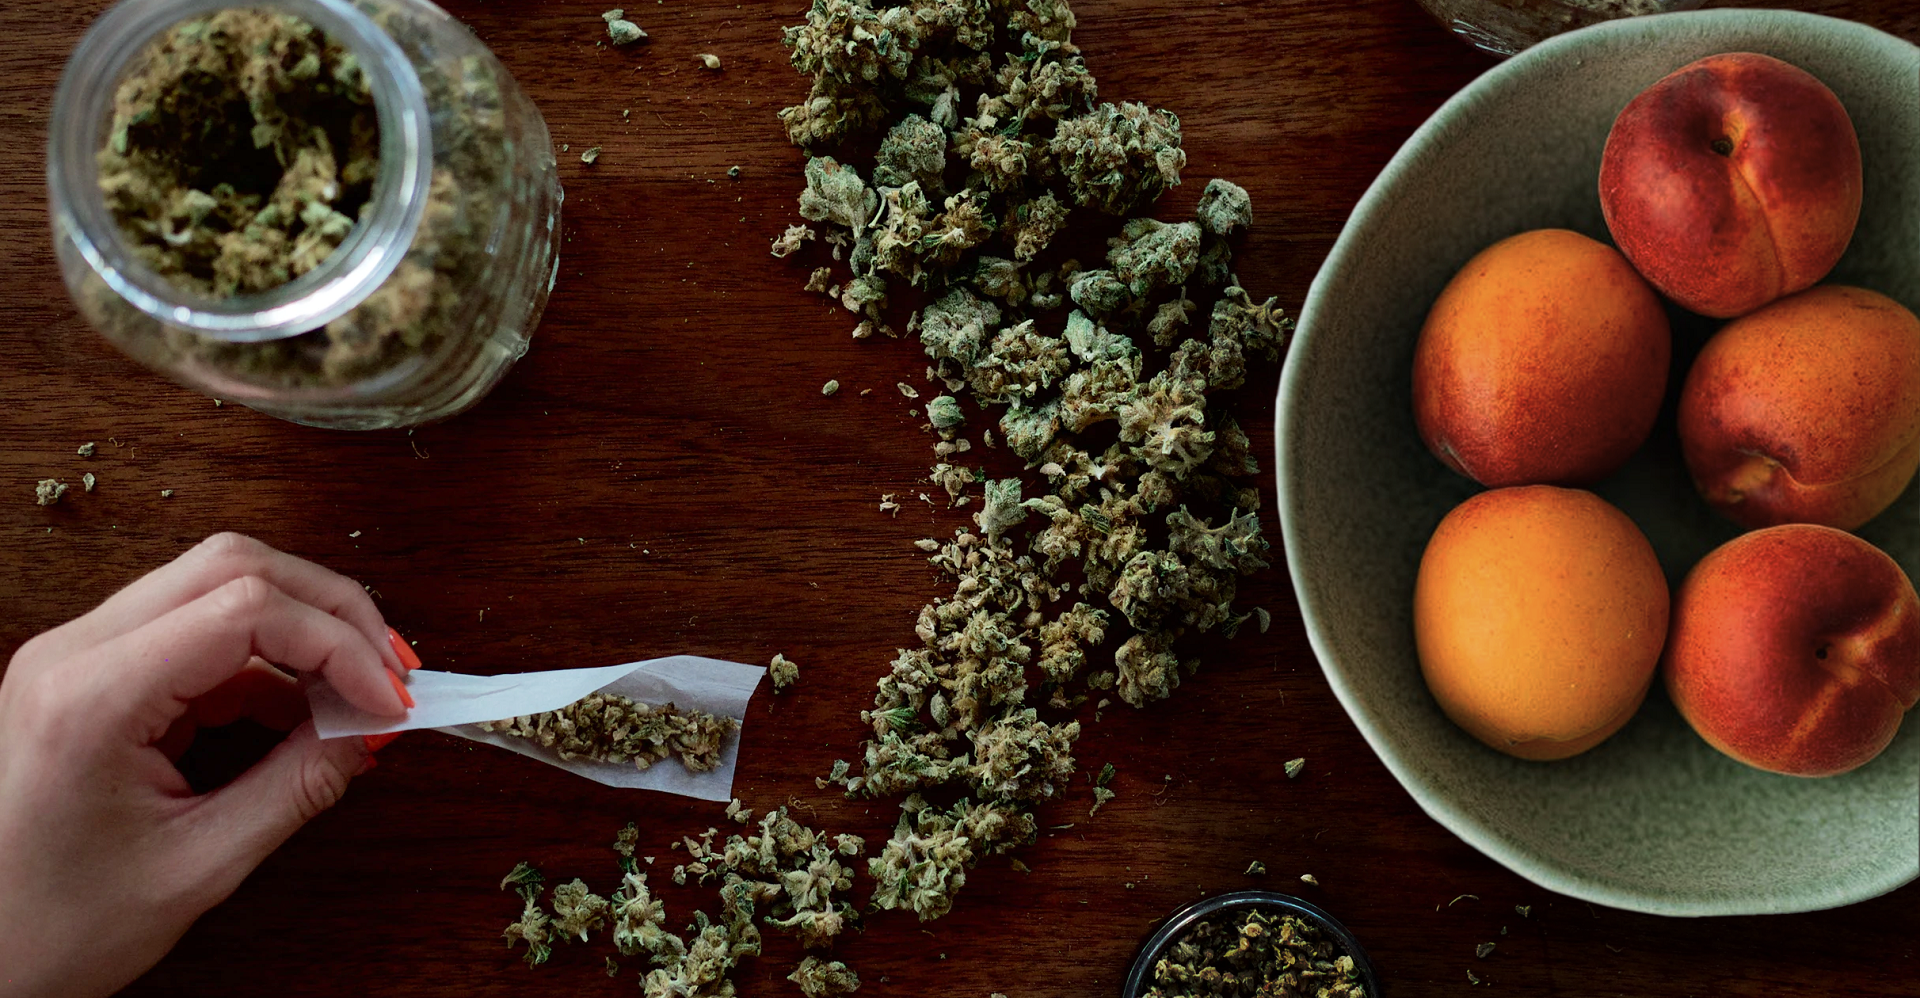 A pile of peach fuzz cannabis strain with a joint being rolled next to a bowl of peaches